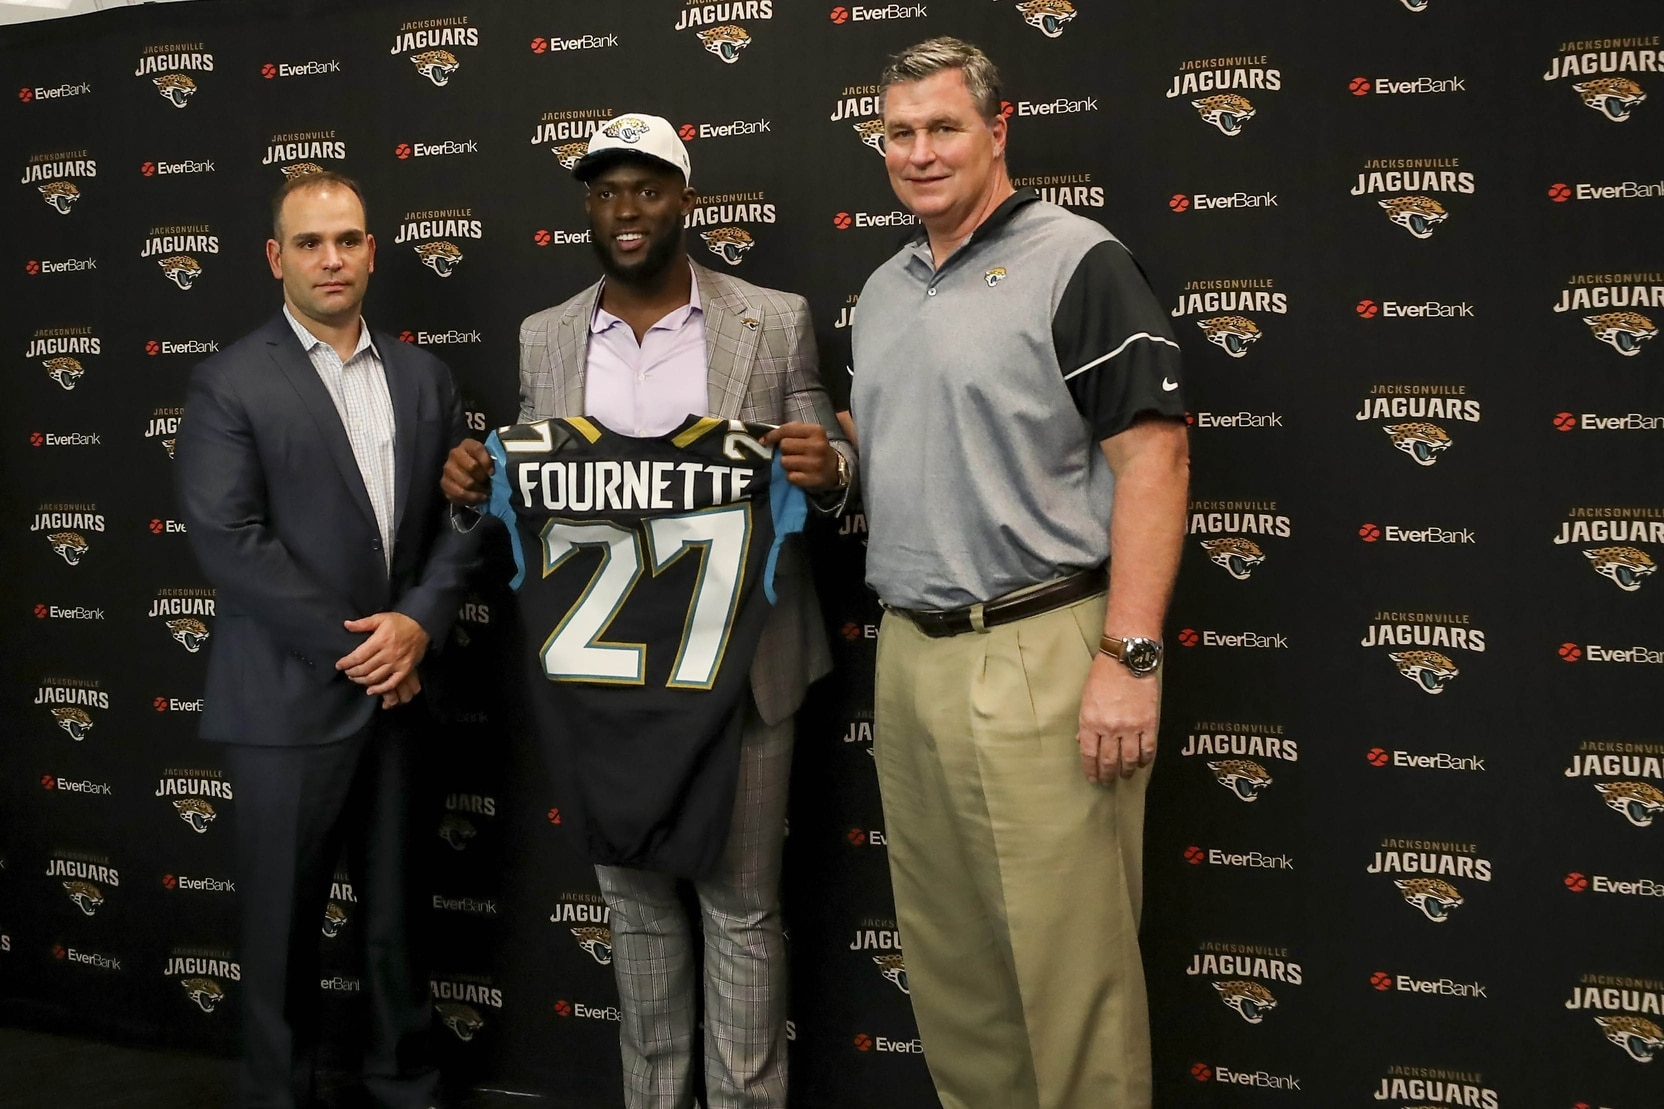 Apr 28, 2017; Jacksonville, FL, USA; Jacksonville Jaguars general manager Dave Caldwell (left), running back Leonard Fournette (center) and head coach Doug Marrone (right) pose for a picture during a press conference at EverBank Field. Leonard Fournette was the 2017 first round pick of the Jacksonville Jaguars. Mandatory Credit: Logan Bowles-USA TODAY Sports